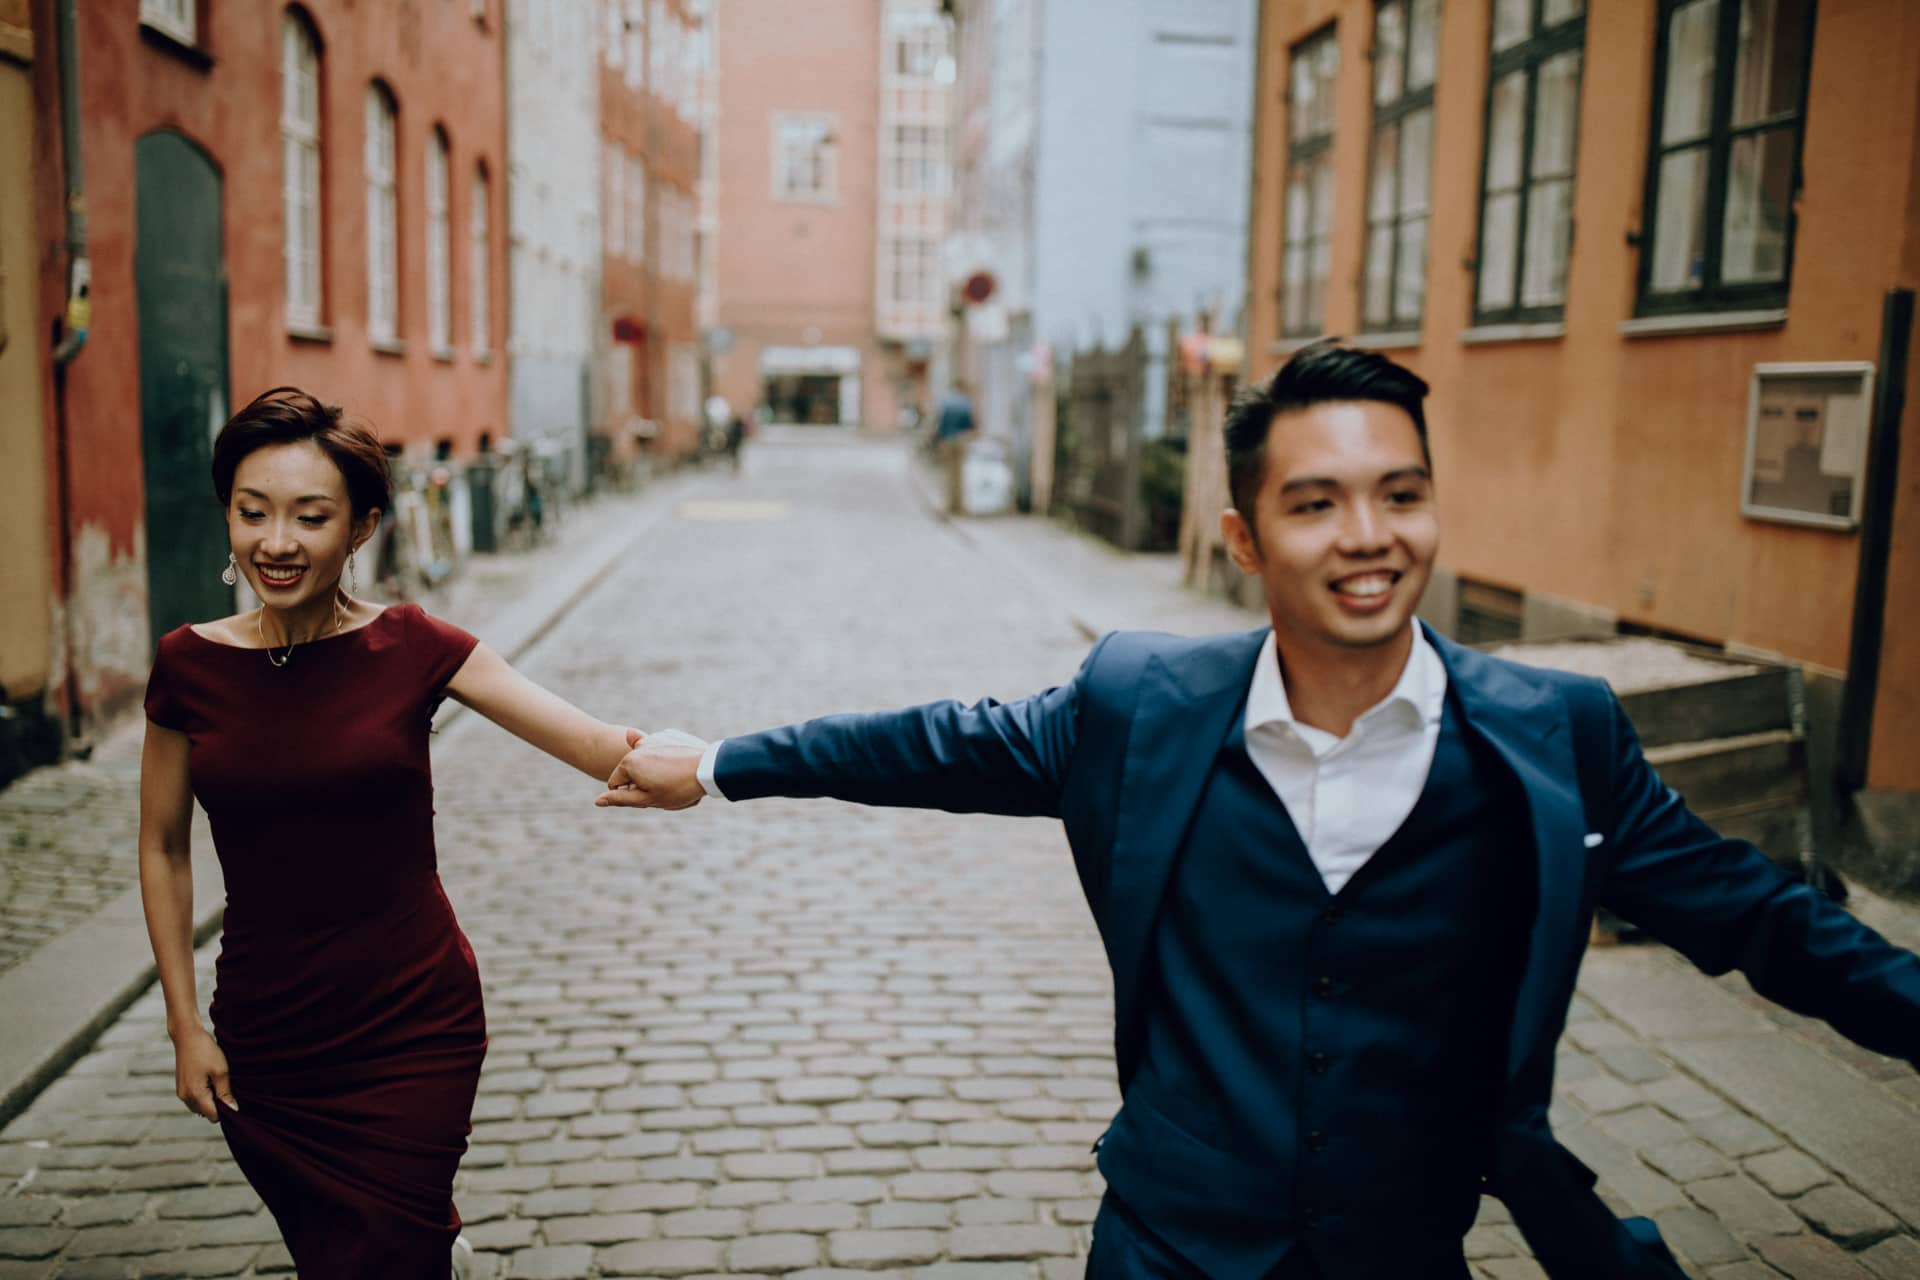 The wedding couple is running through the streets of Copenhagen.